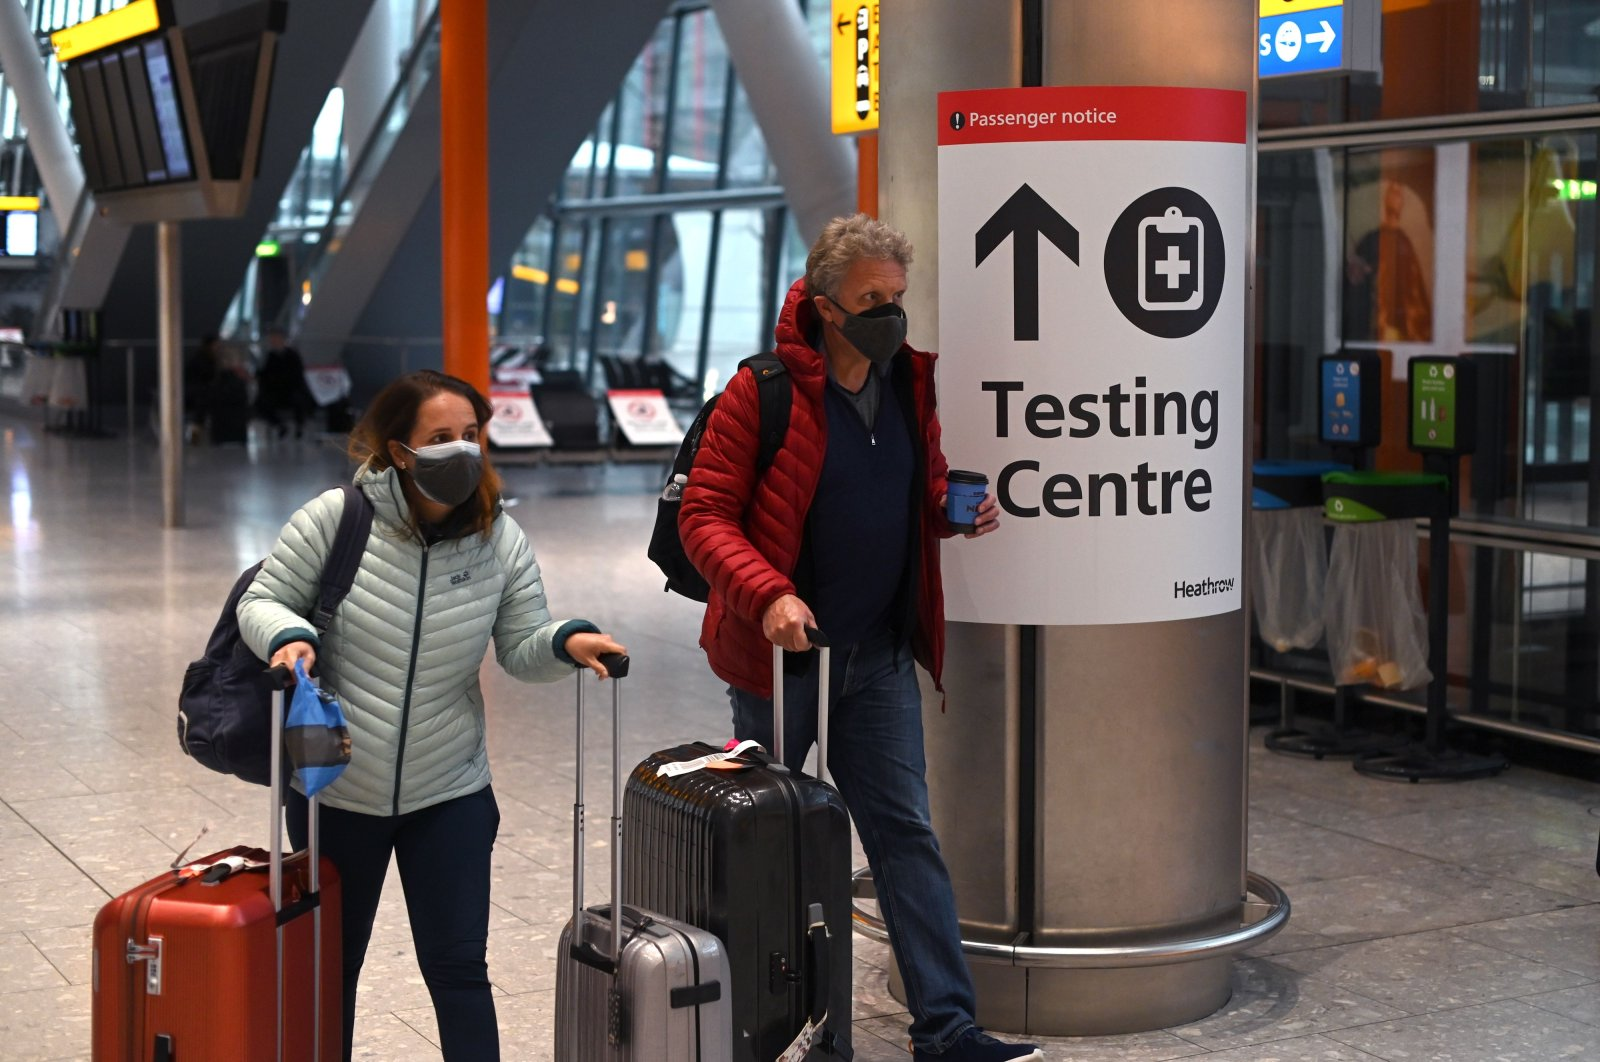 A sign directs passengers to a COVID-19 testing center at Terminal 5 of London Heathrow Airport in west London, Britain, Feb. 9, 2021. (AFP Photo)